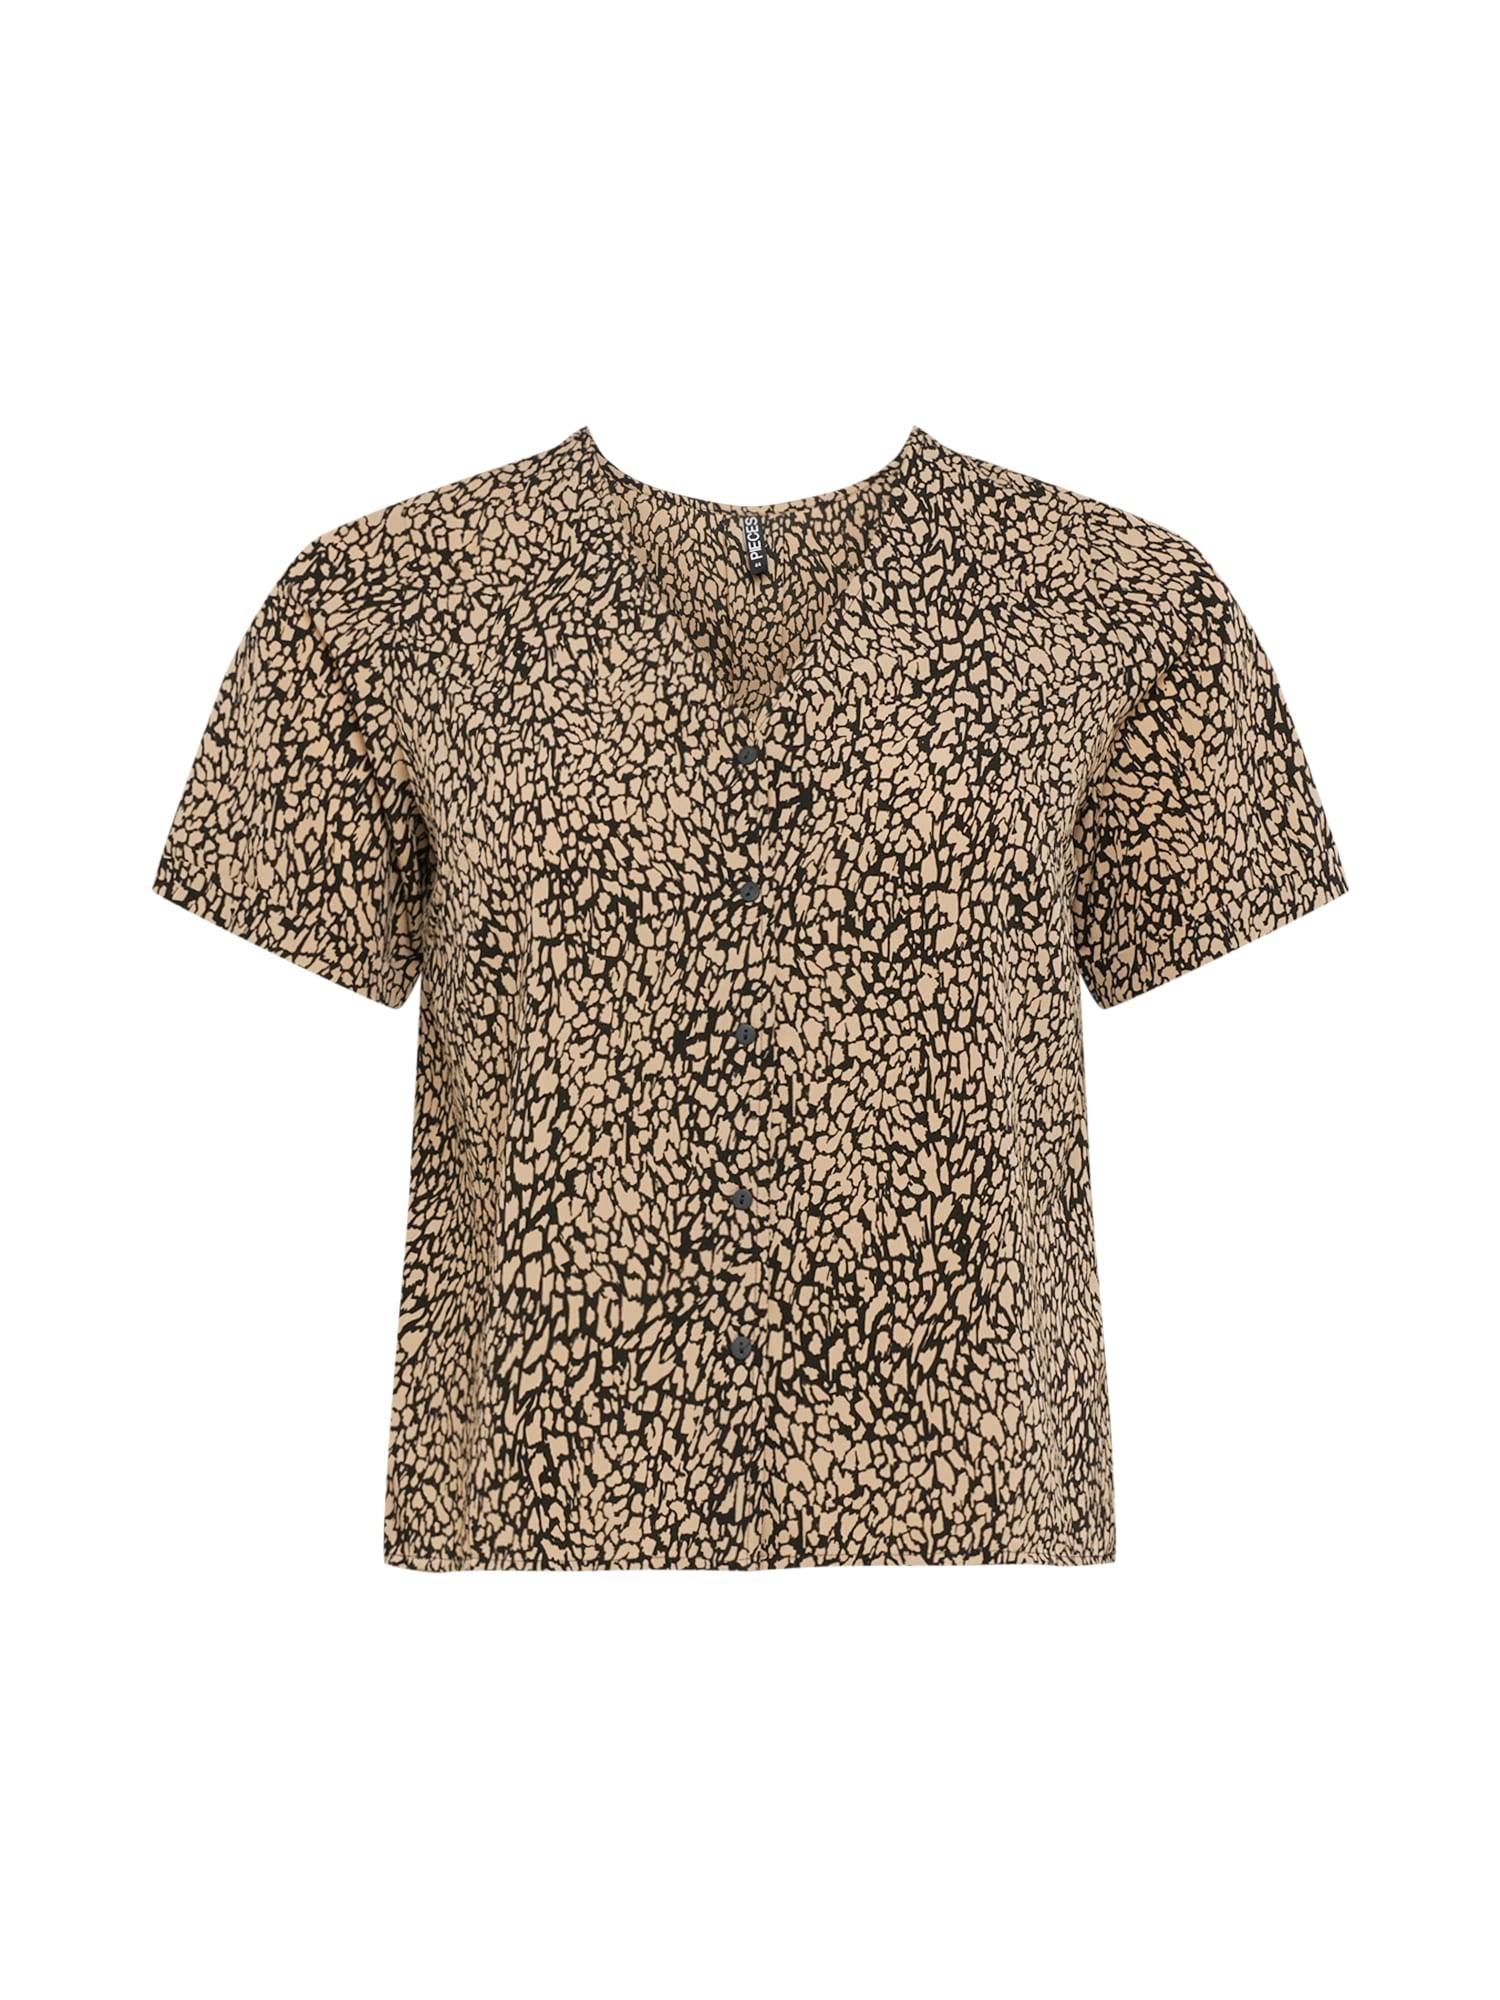 PIECES (Curve) T-shirt 'GILBERTA'  - Noir - Taille: 54 - female